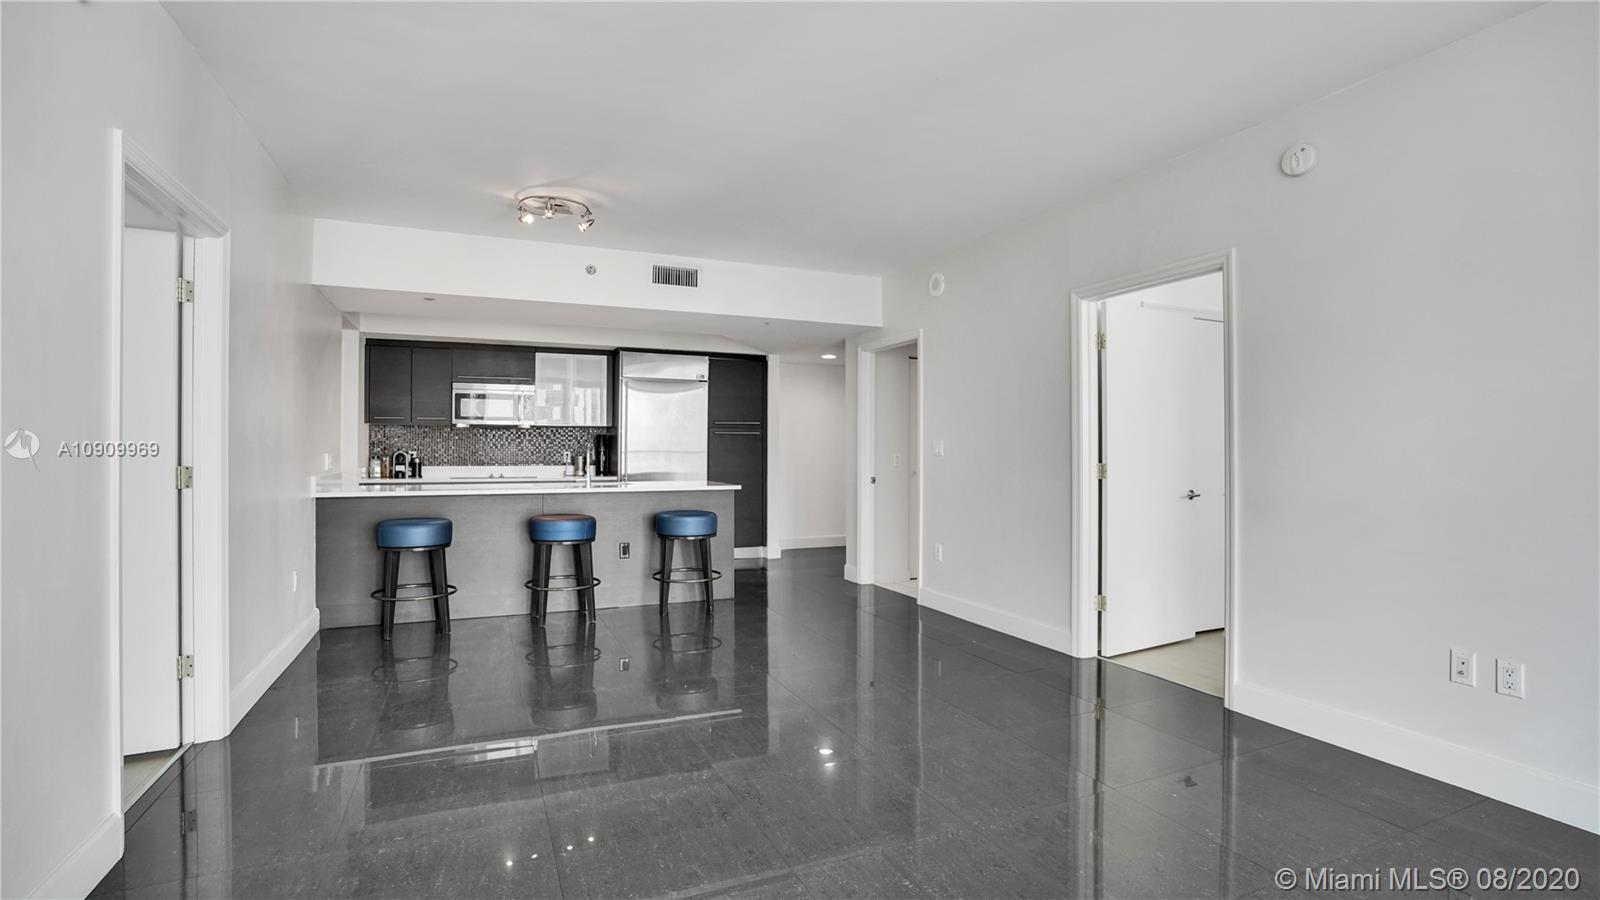 500 Brickell East Tower #1903 - 55 SE 6th St #1903, Miami, FL 33131